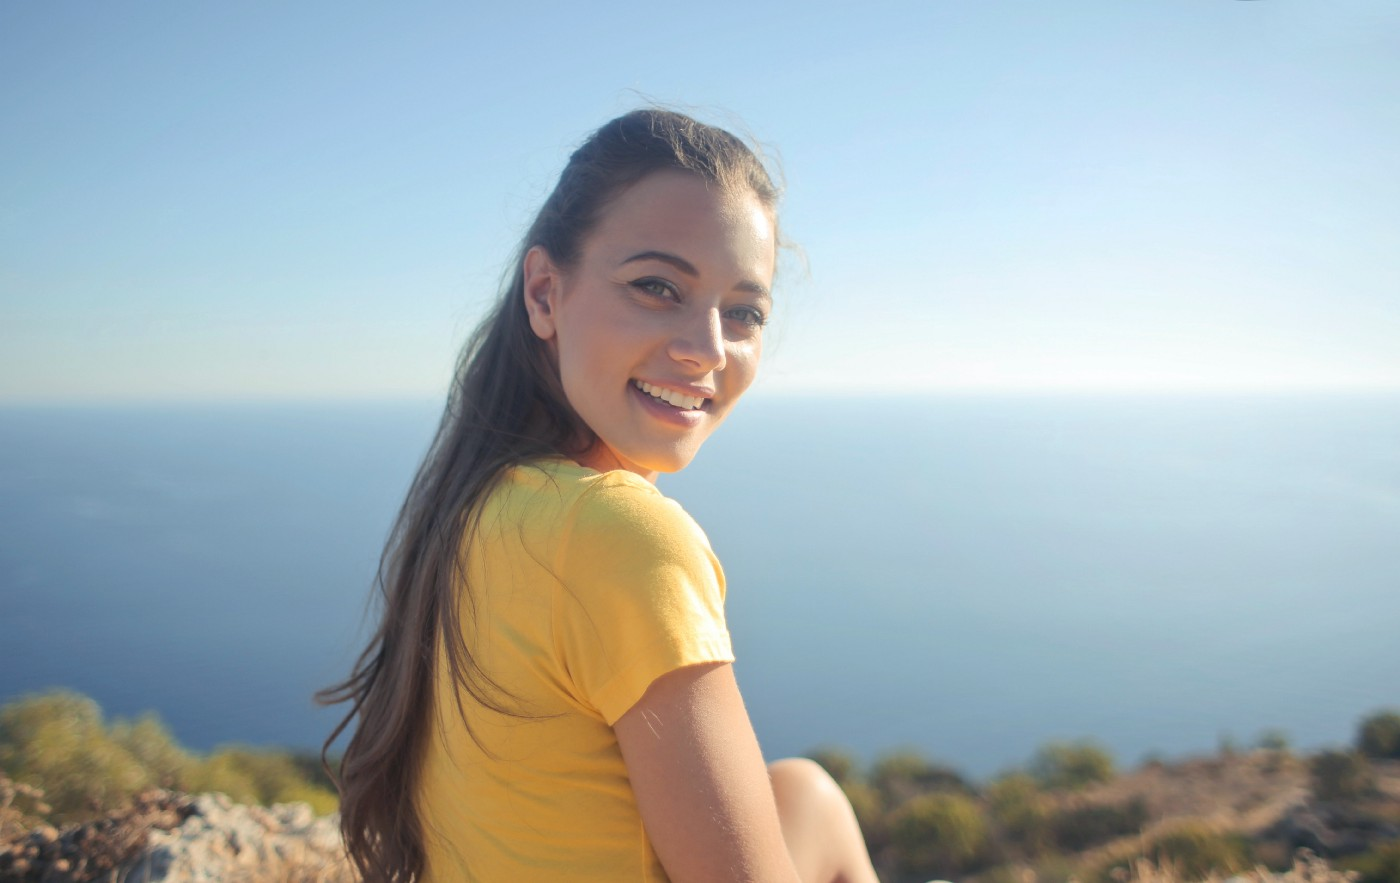 Woman smiling at the camera, wearing a yellow shirt. She is sitting on a mountain with a horizon behind her and ground below.